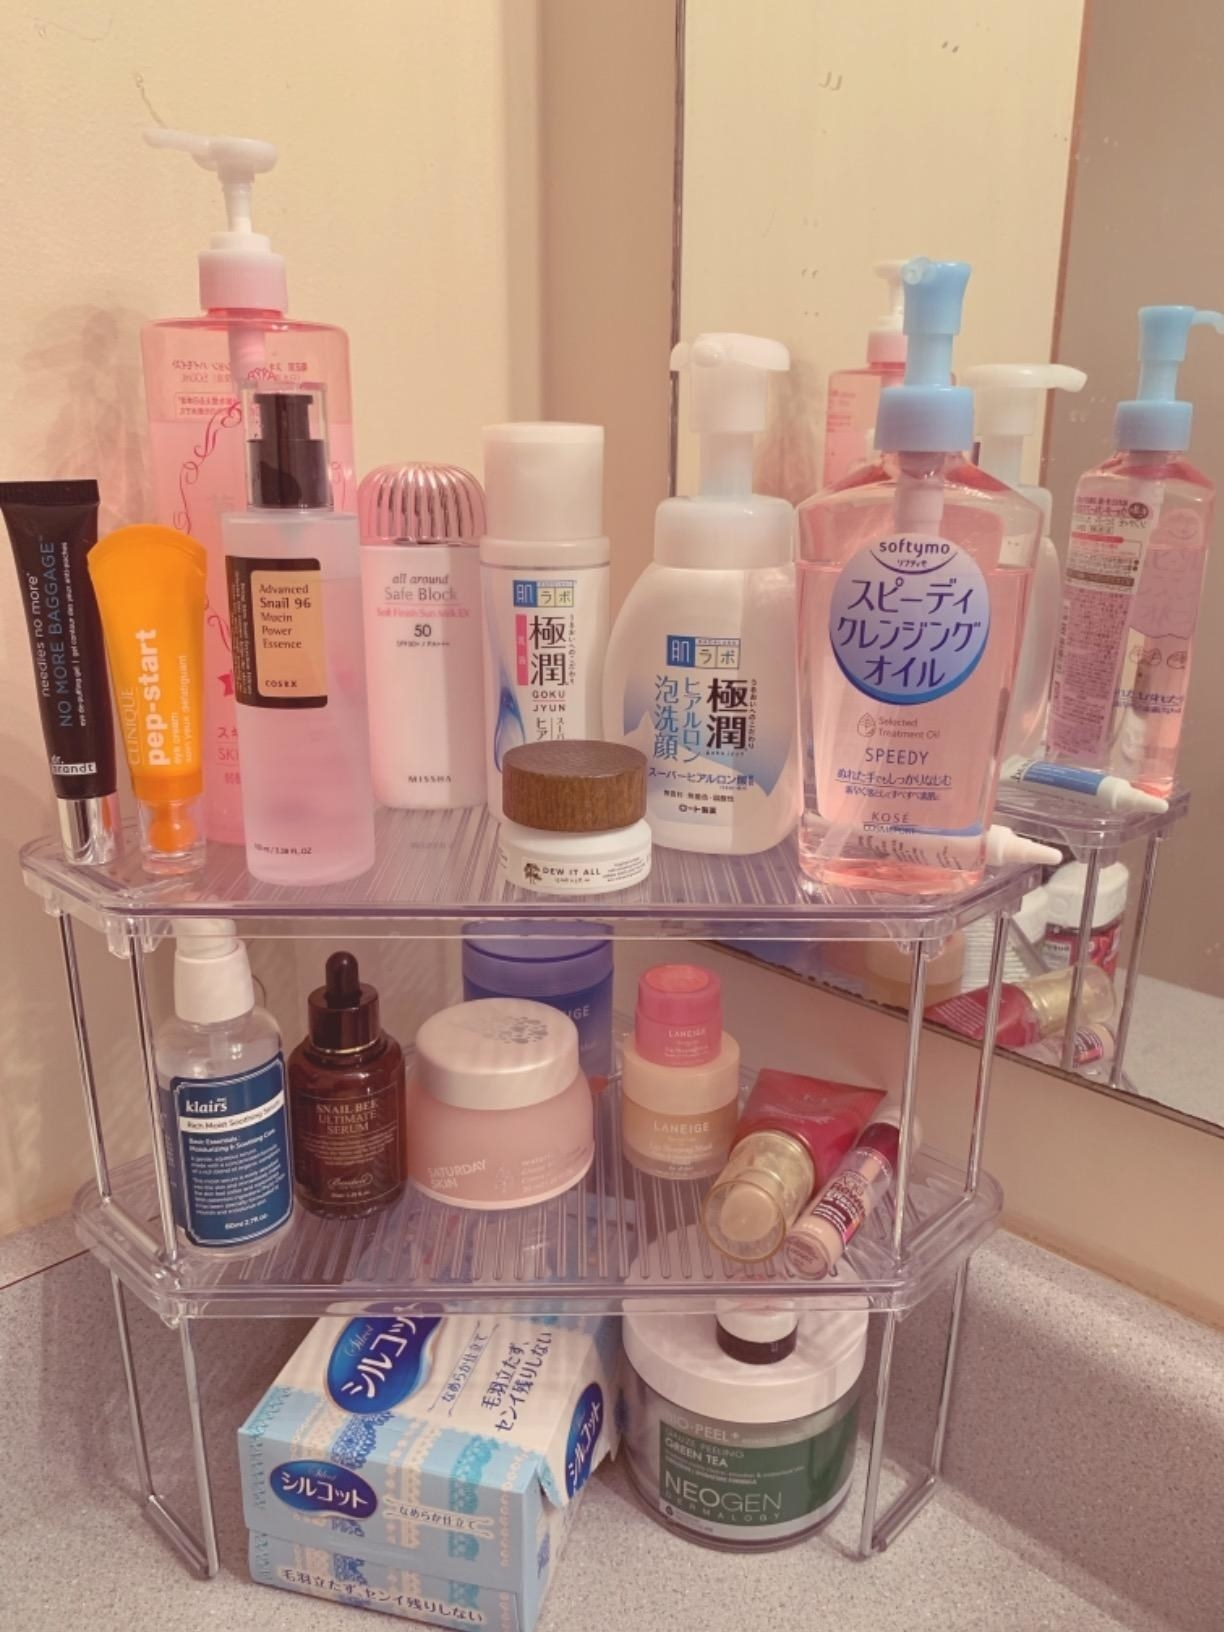 Reviewer image of the shelves stacked on top of each other and holding a variety of bathroom essentials